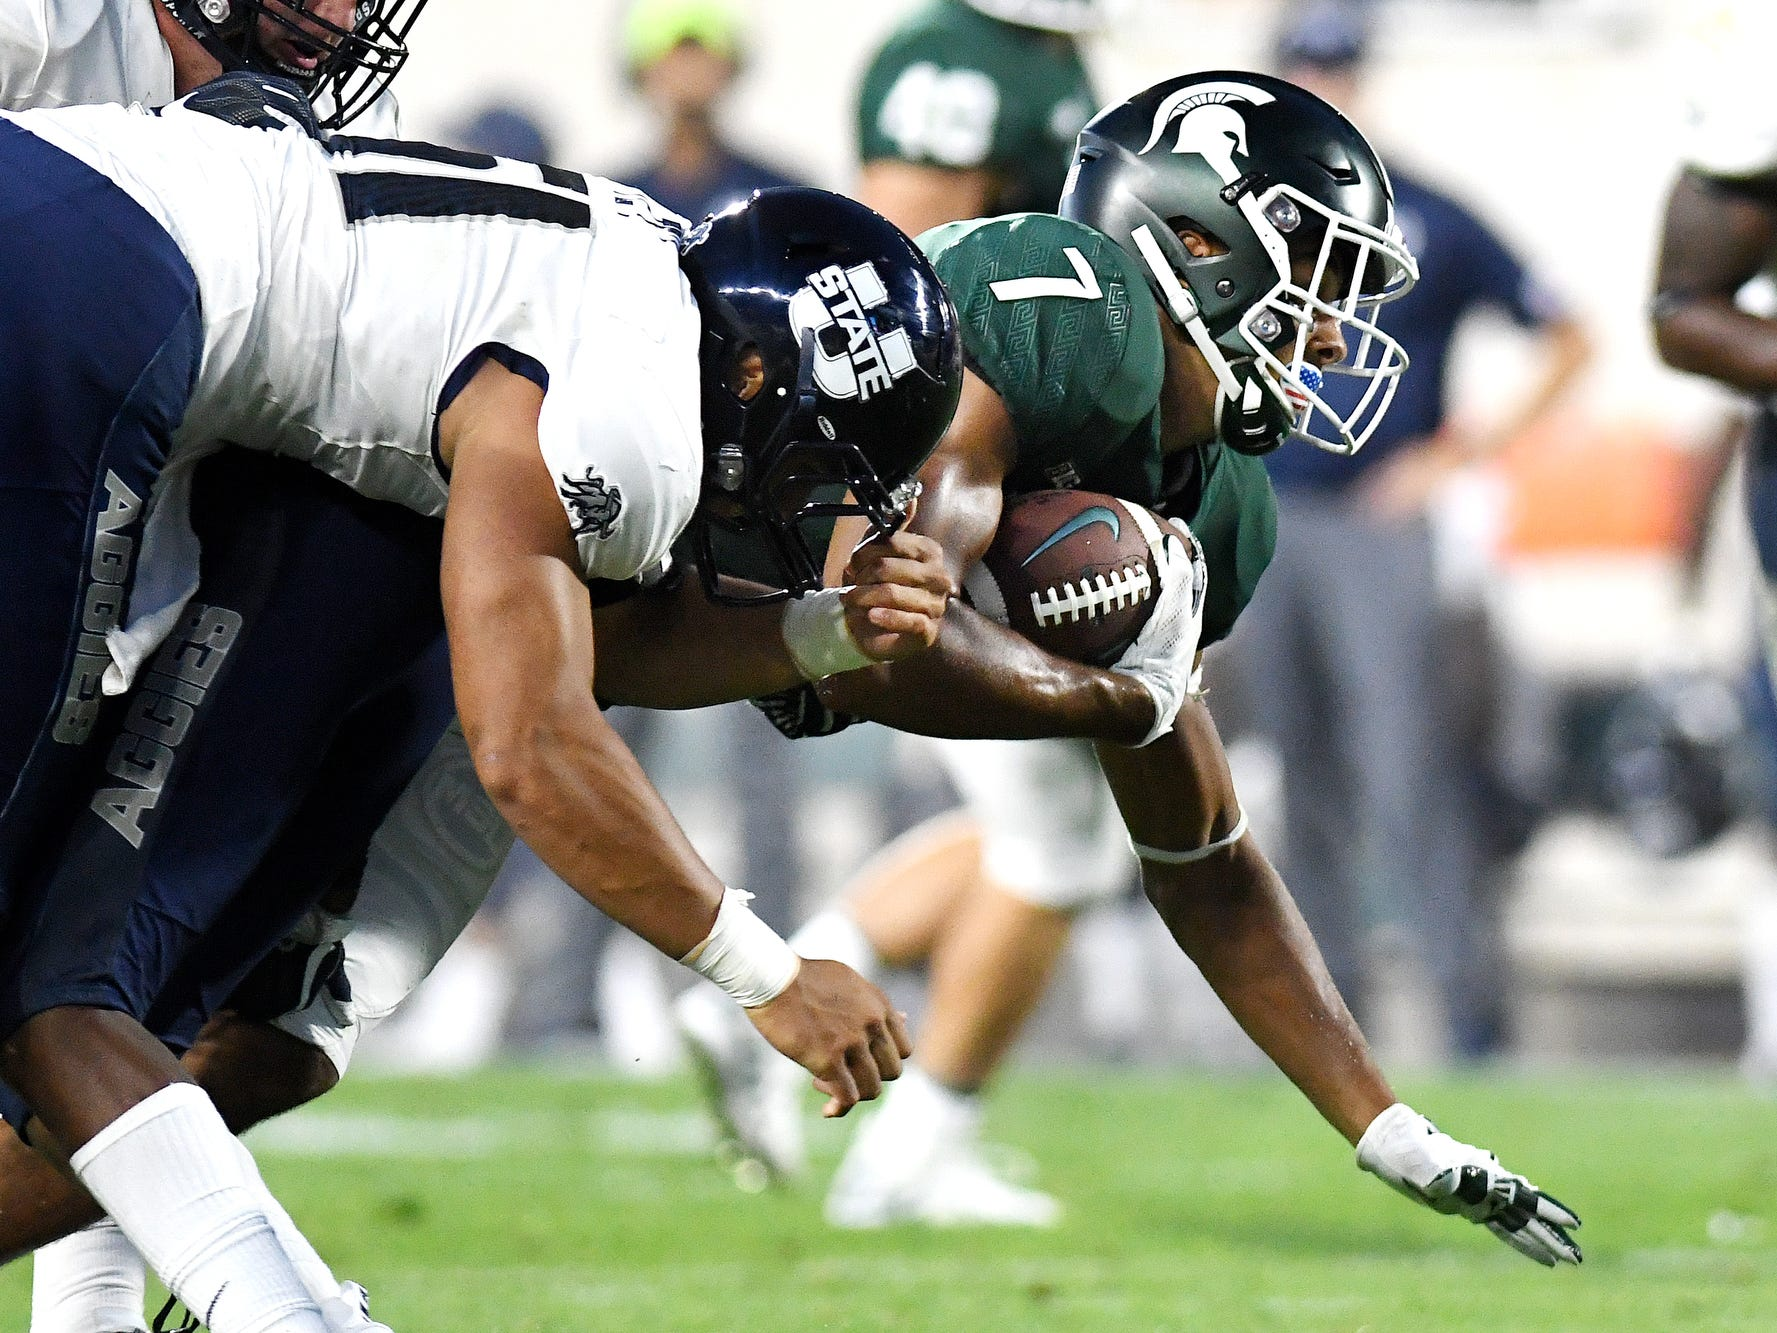 Michigan State's Cody White dives through the Utah State defense for extra yards after a catch during the second quarter on Friday, Aug. 31, 2018, at Spartan Stadium in East Lansing.